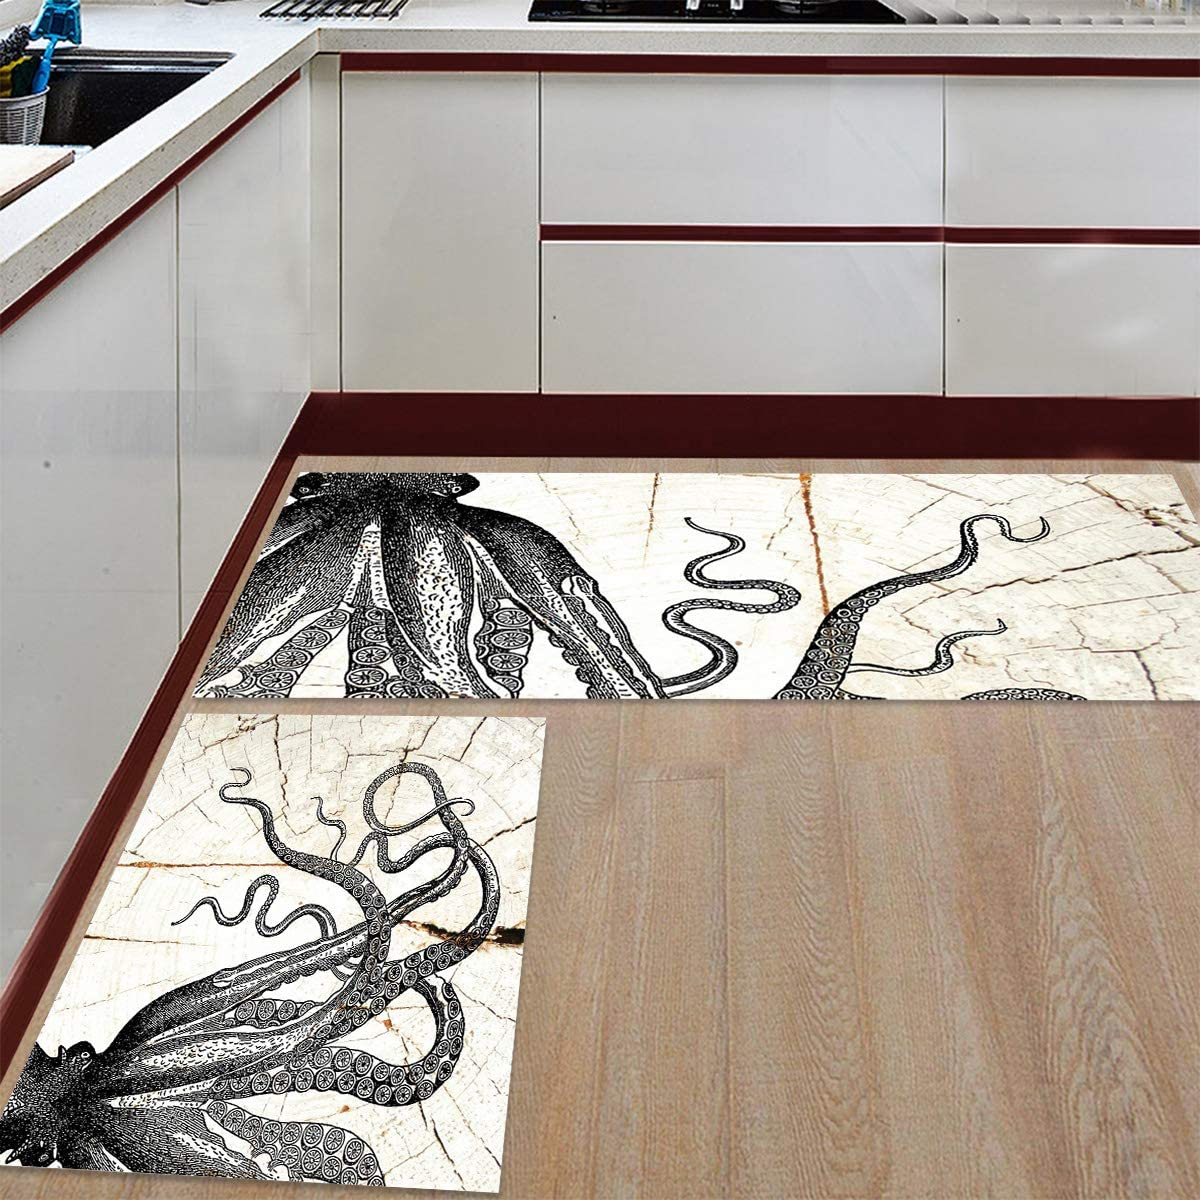 Advancey Ranking TOP16 2 Pieces Anti-Slip Kitchen Long Octopus Max 88% OFF Mats Black with